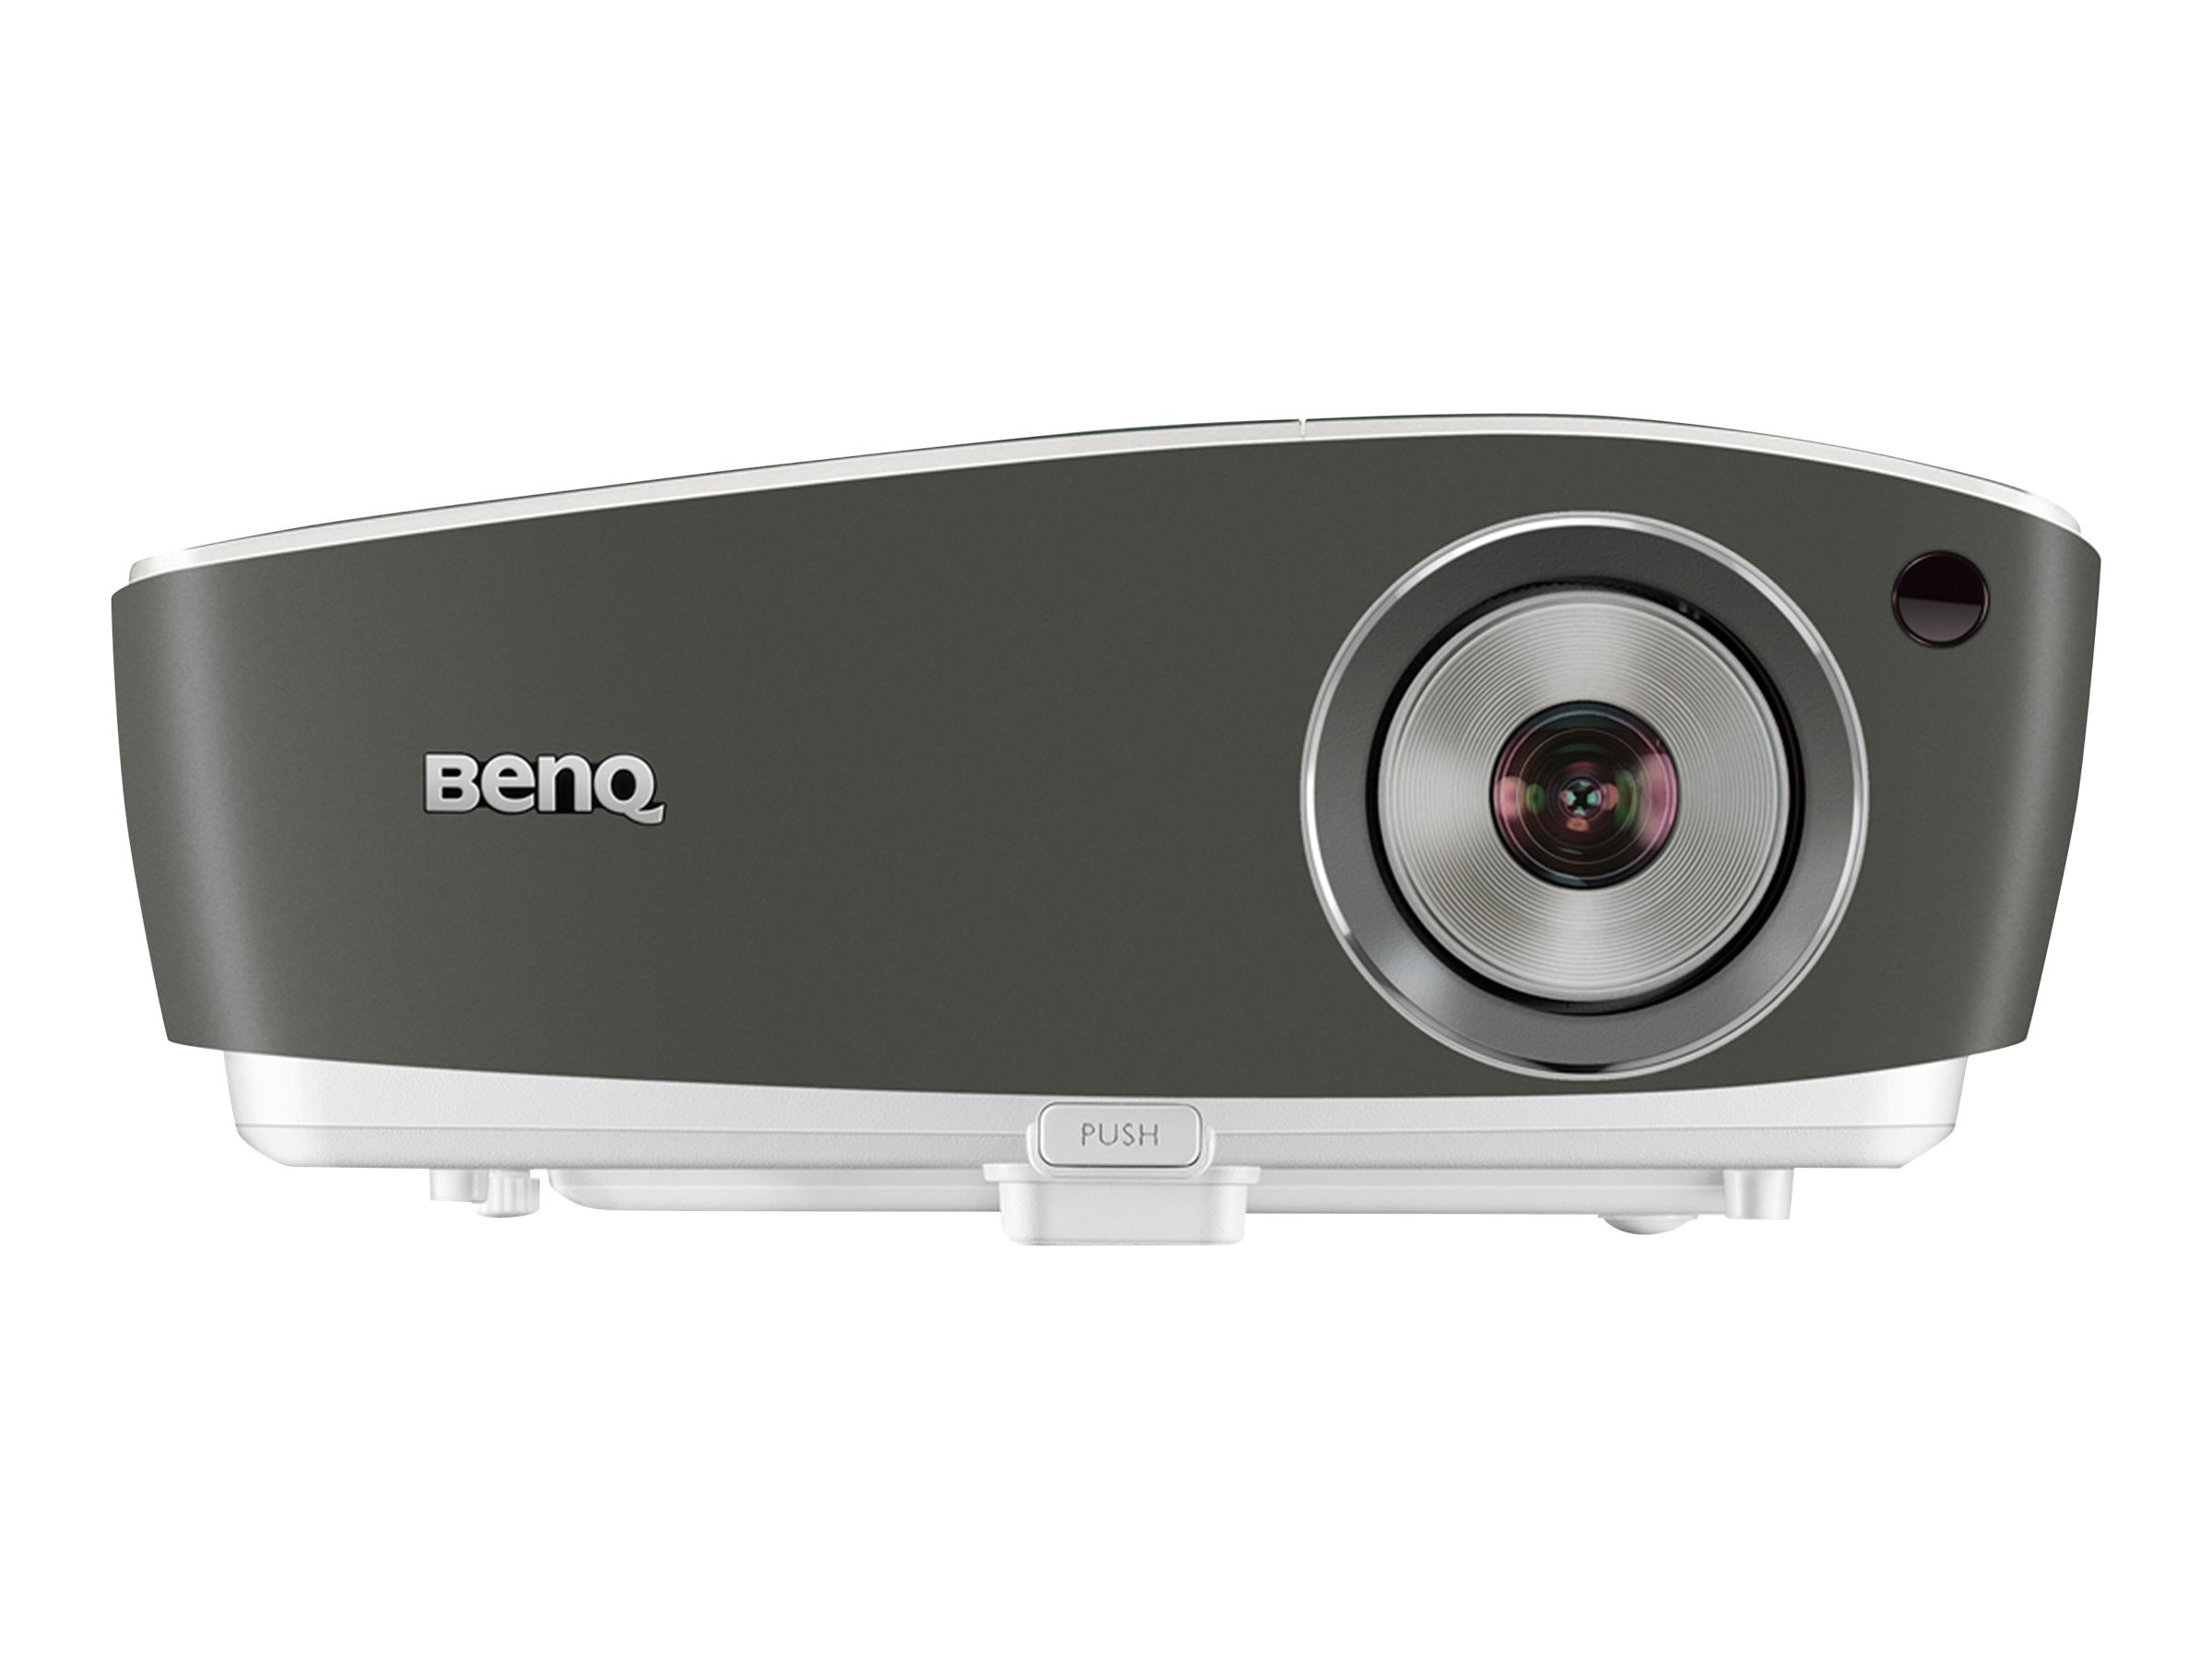 Benq TH670 1080P DLP Projector, 3000 Lumens, White Gray